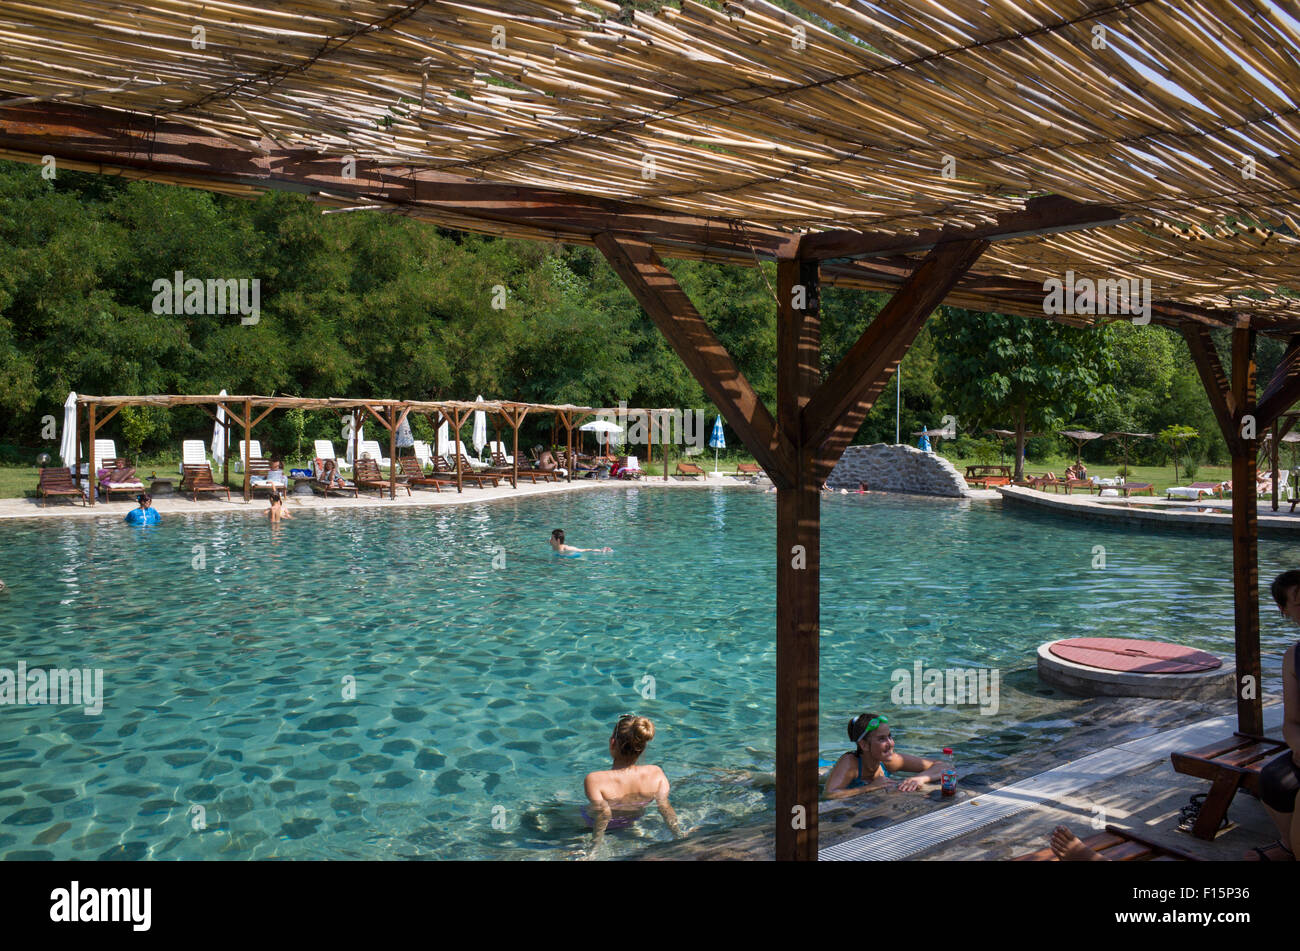 Open Air Thermal Mineral Water Spring Swimming Pool In